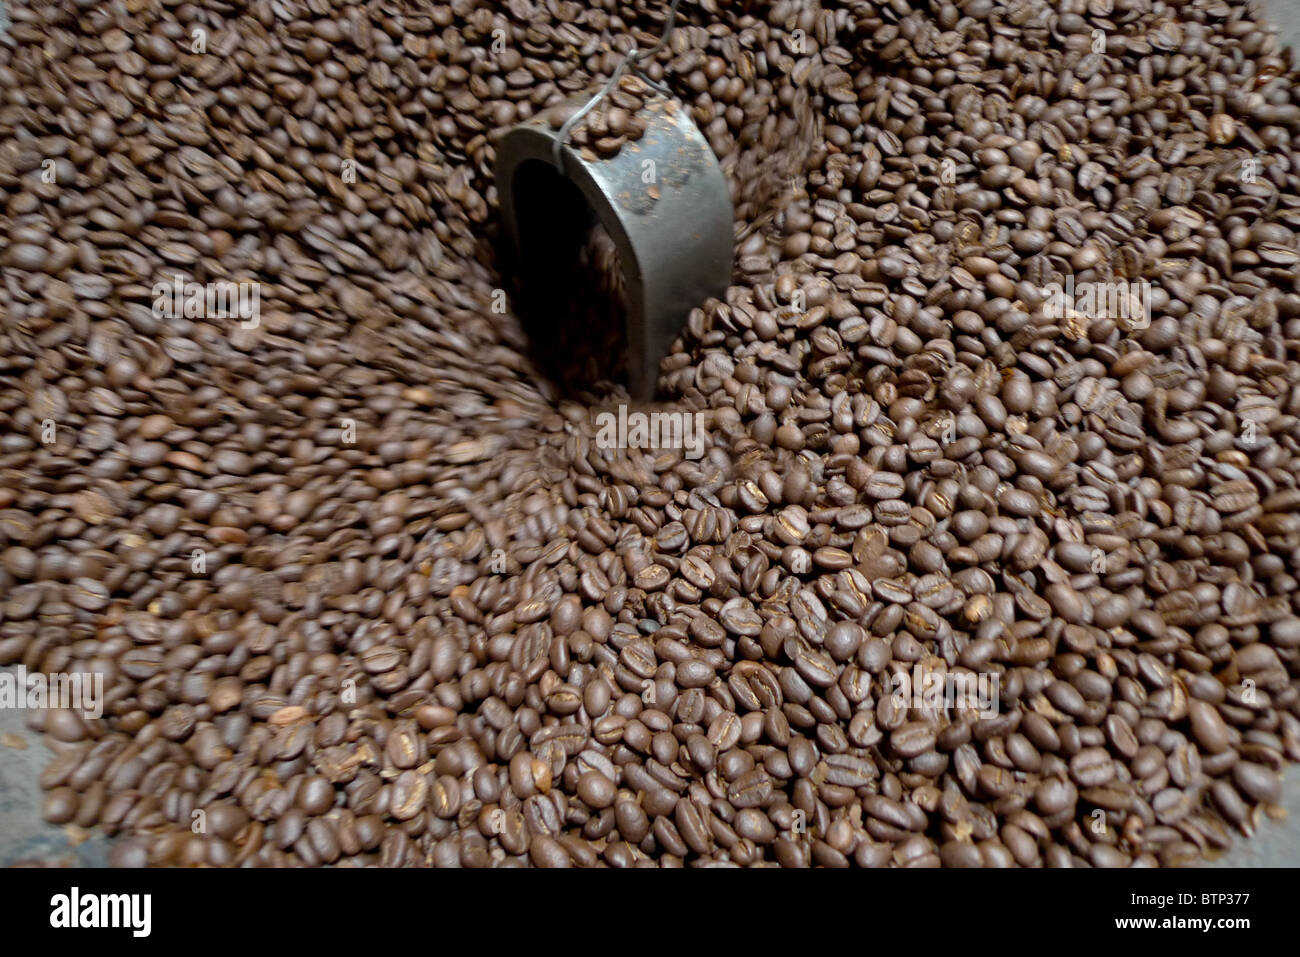 'Aroma Coffee' shop, in Bandung, Western Java province, Indonesia, 29th October 2010. - Stock Image